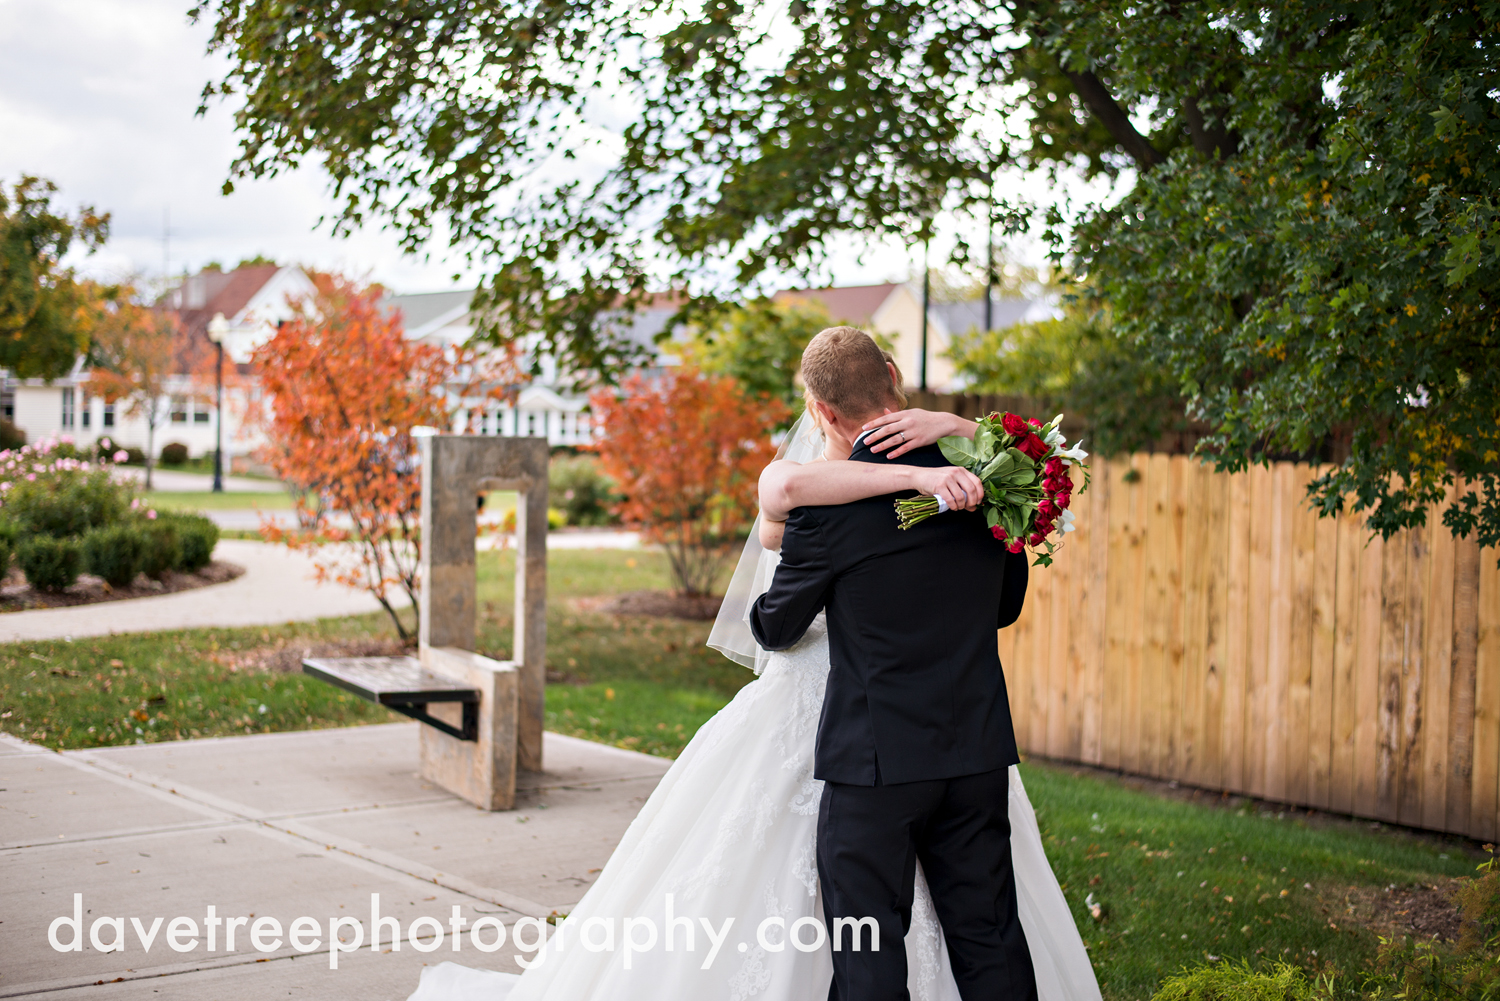 holland_wedding_photographer_83.jpg